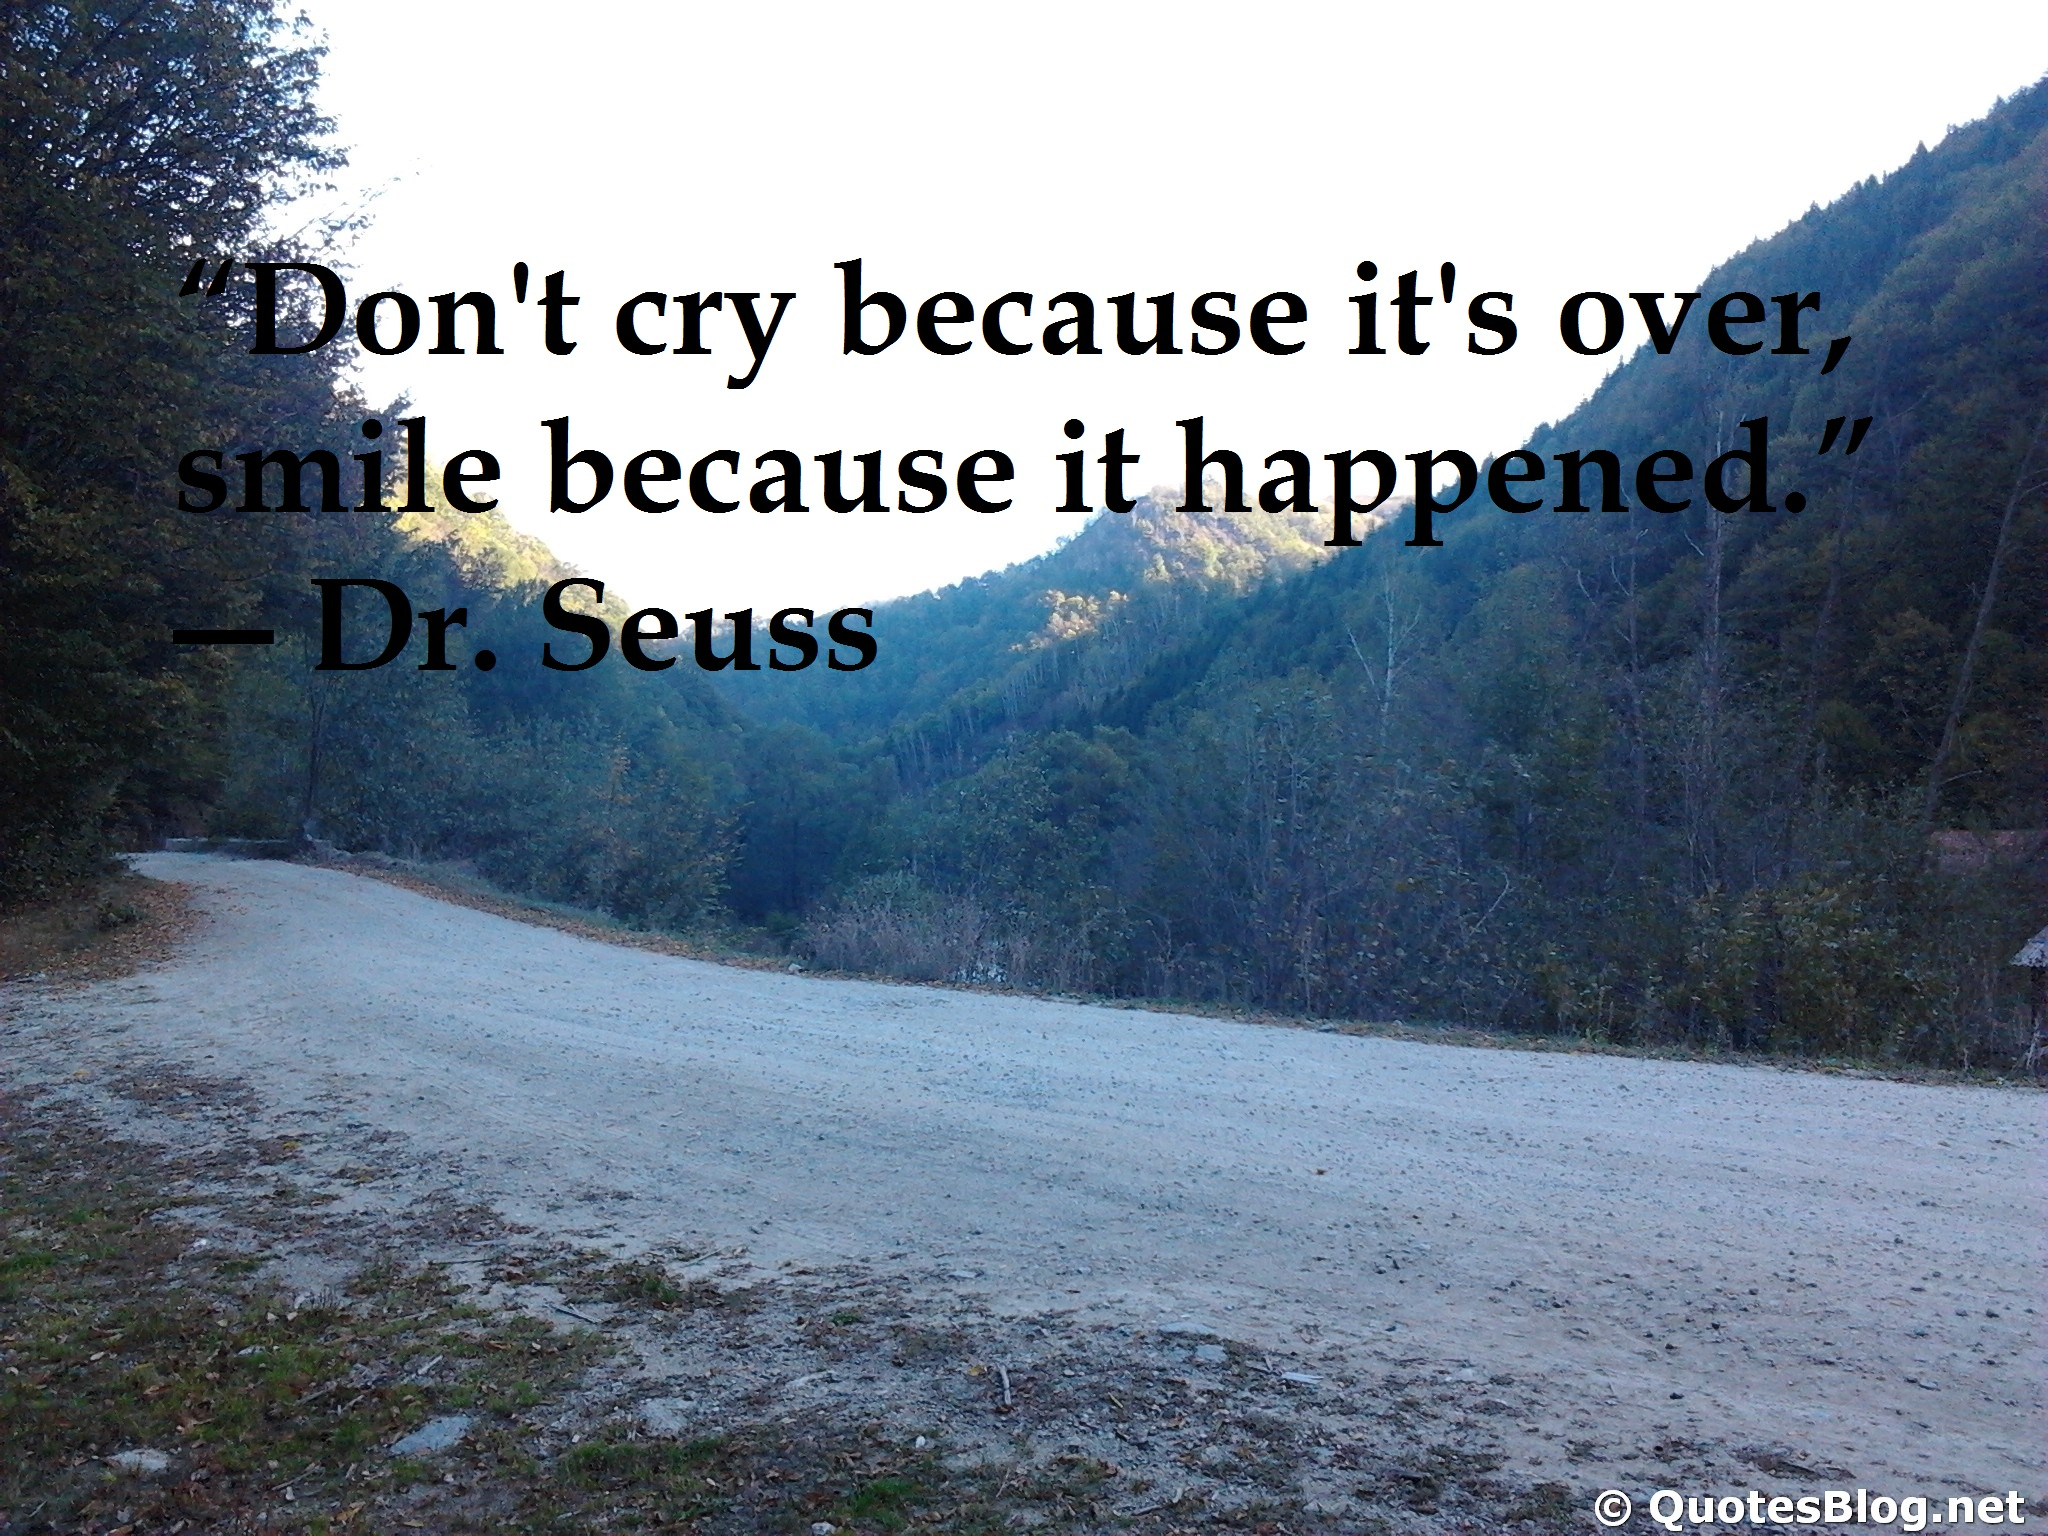 Quotations About Sadness: 20 Must Read Sad Quotes